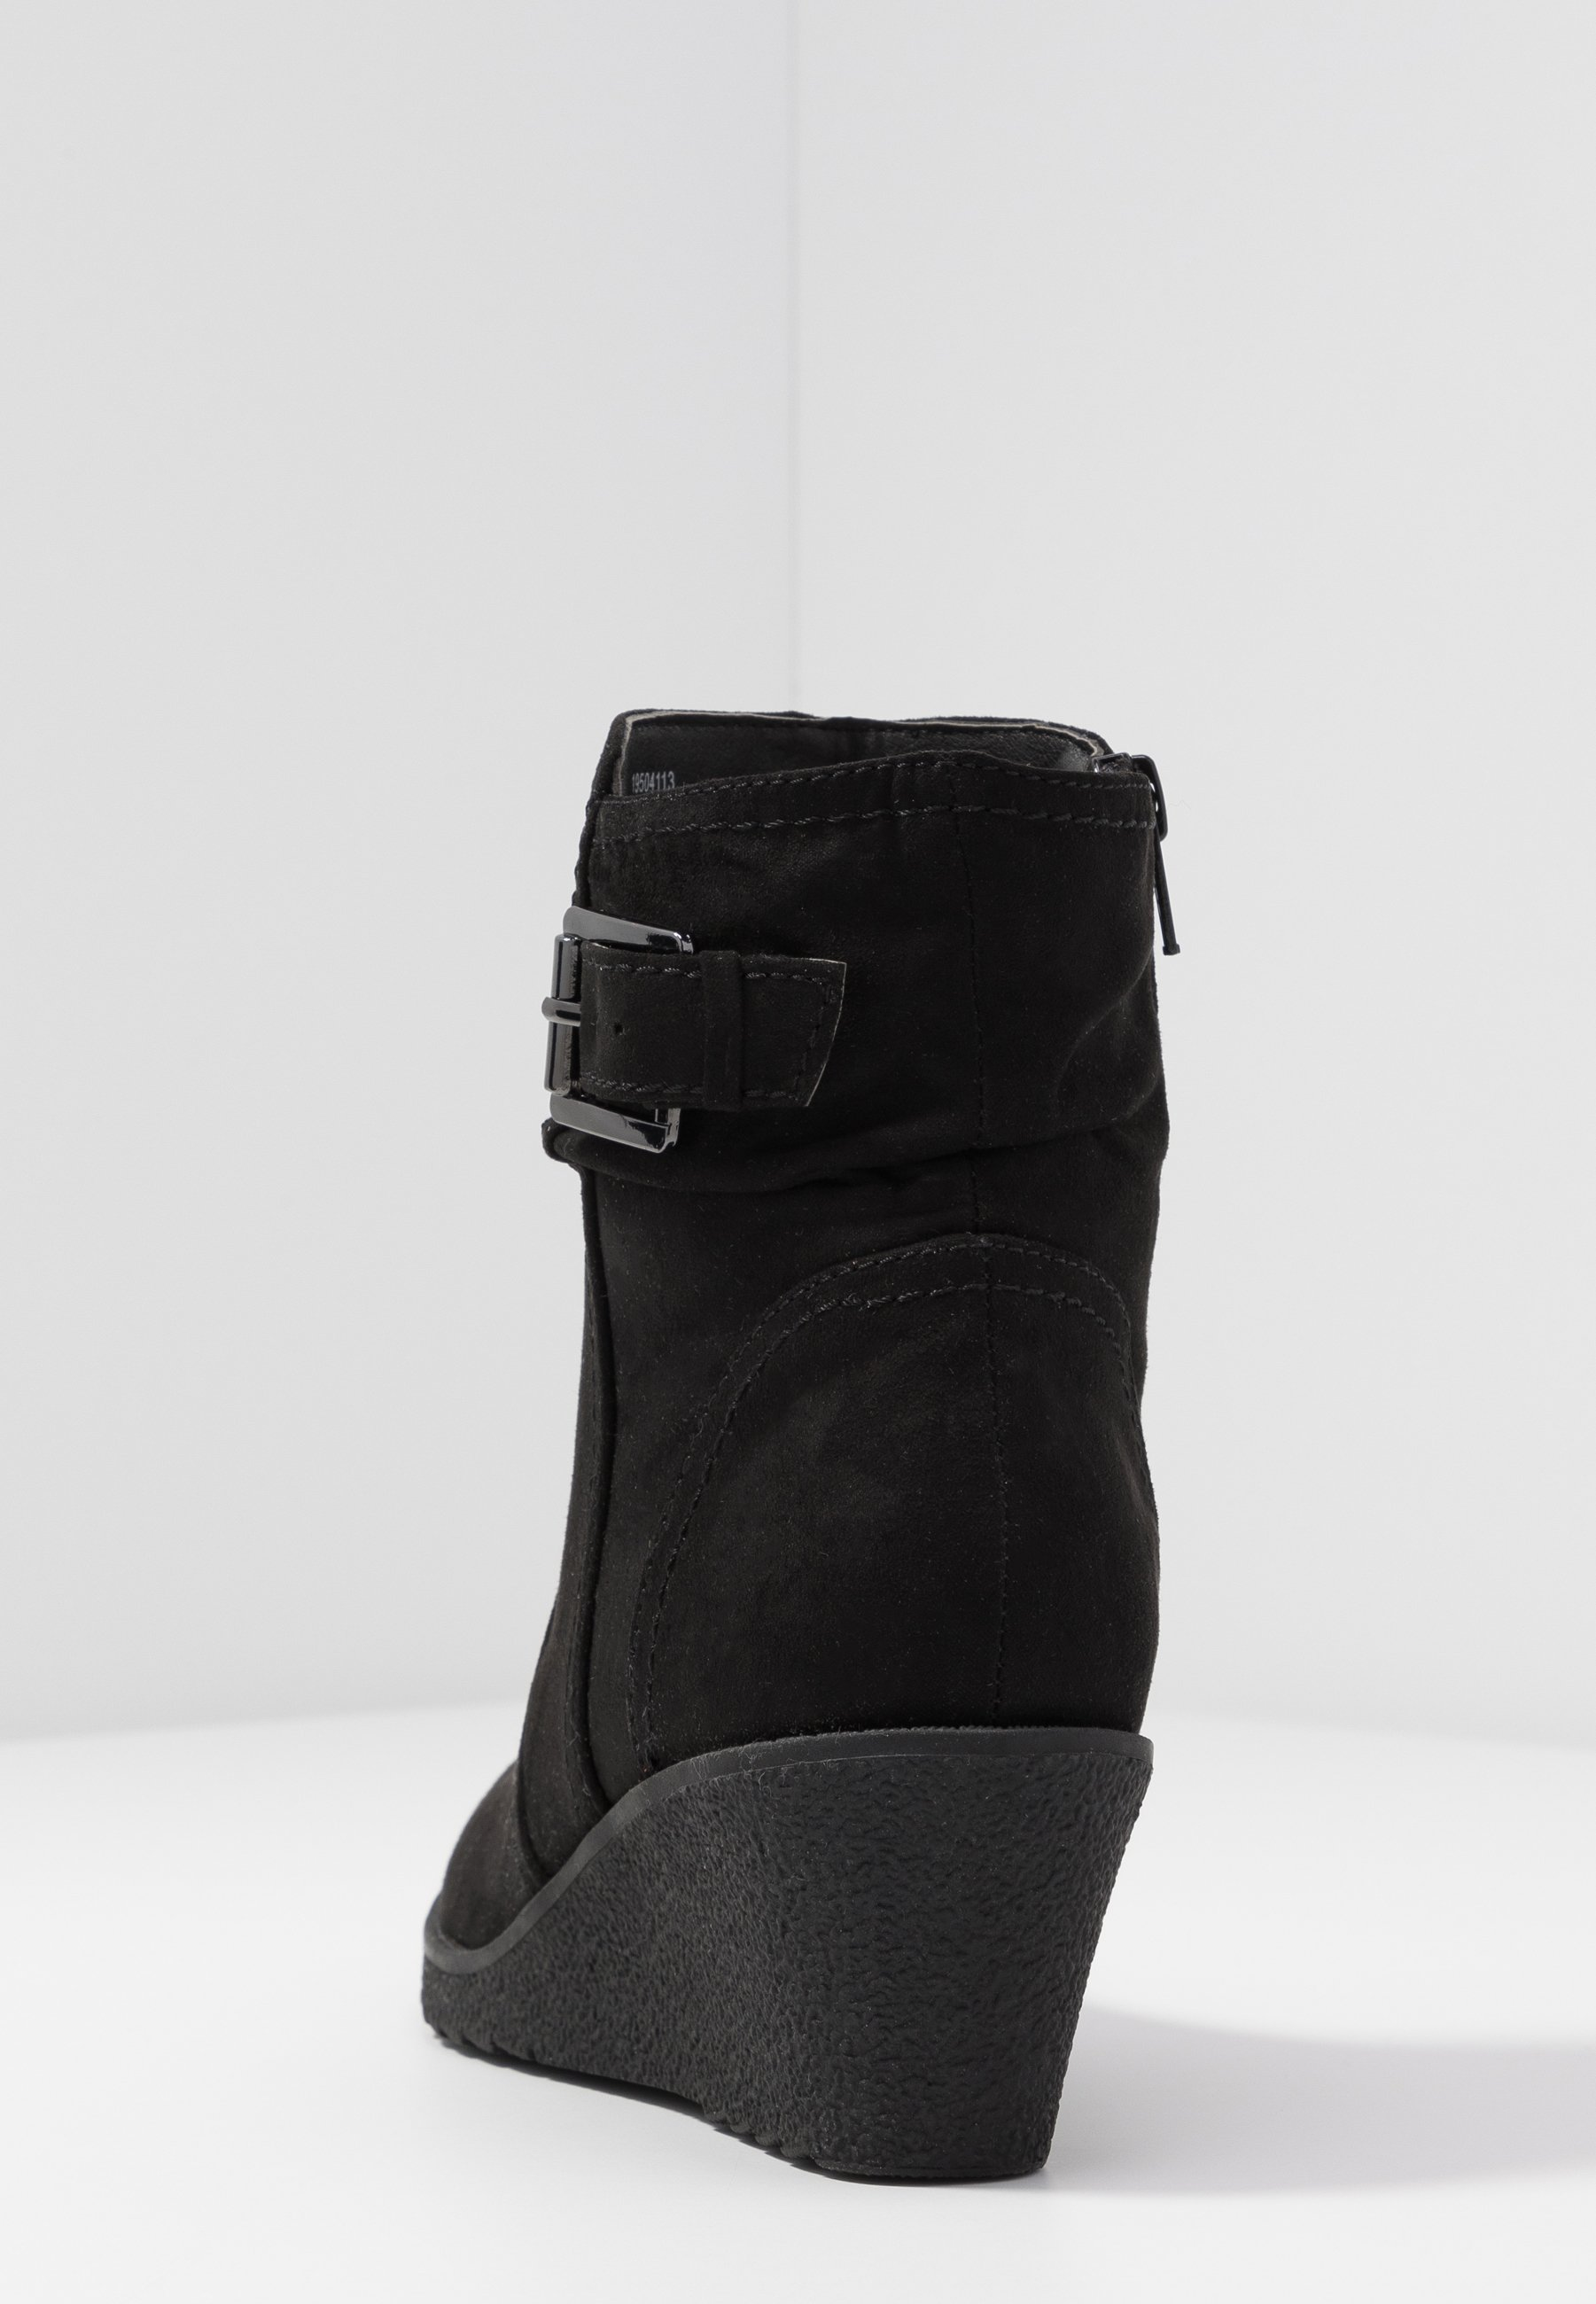 Dorothy Perkins Maddox Wedge - Ankle Boots Black